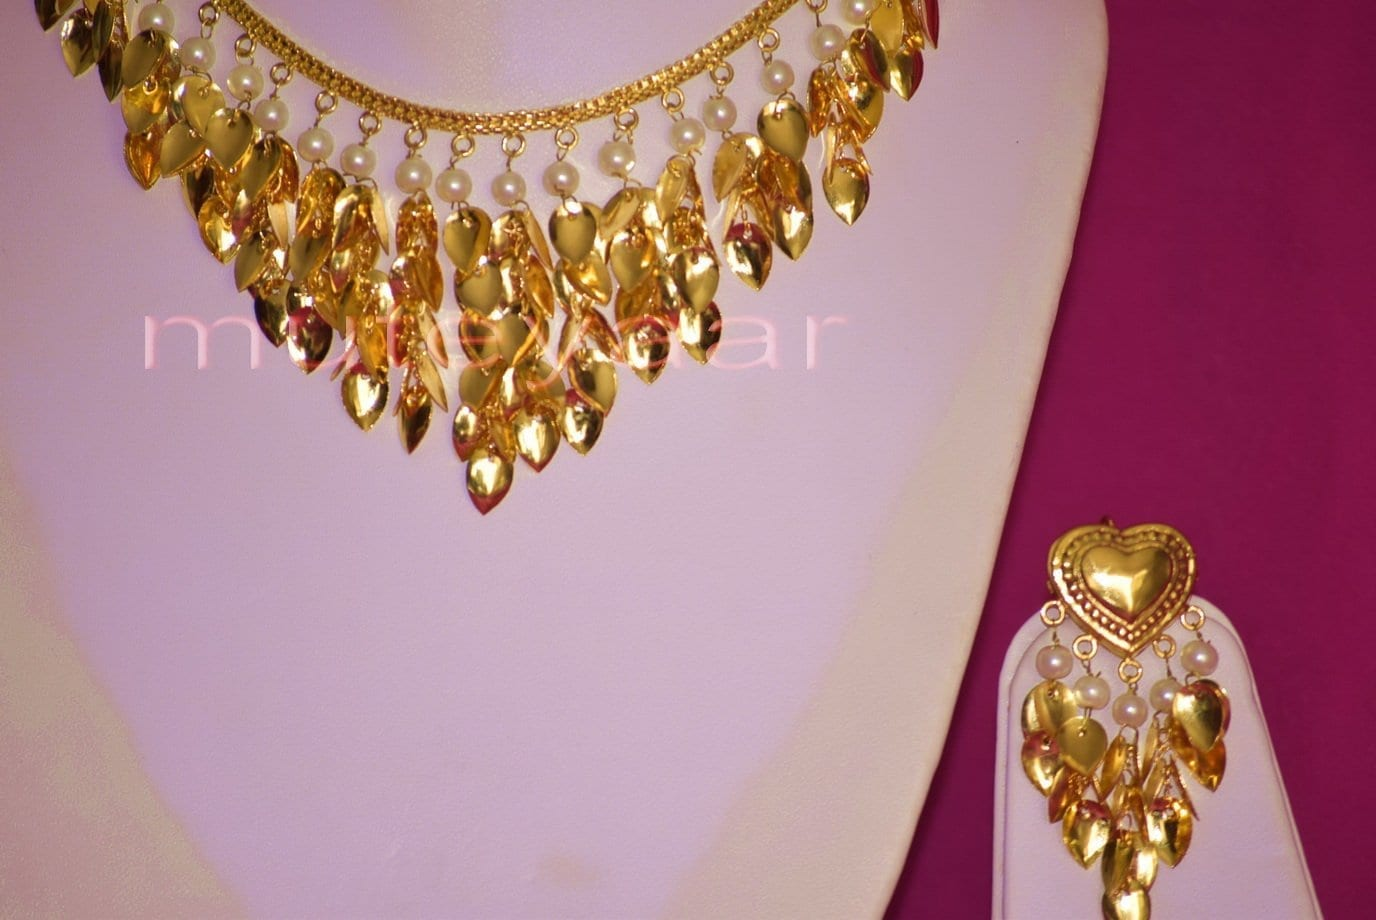 24 Ct. Gold Plated Traditional Punjabi Necklace Earrings jewellery set J0207 4